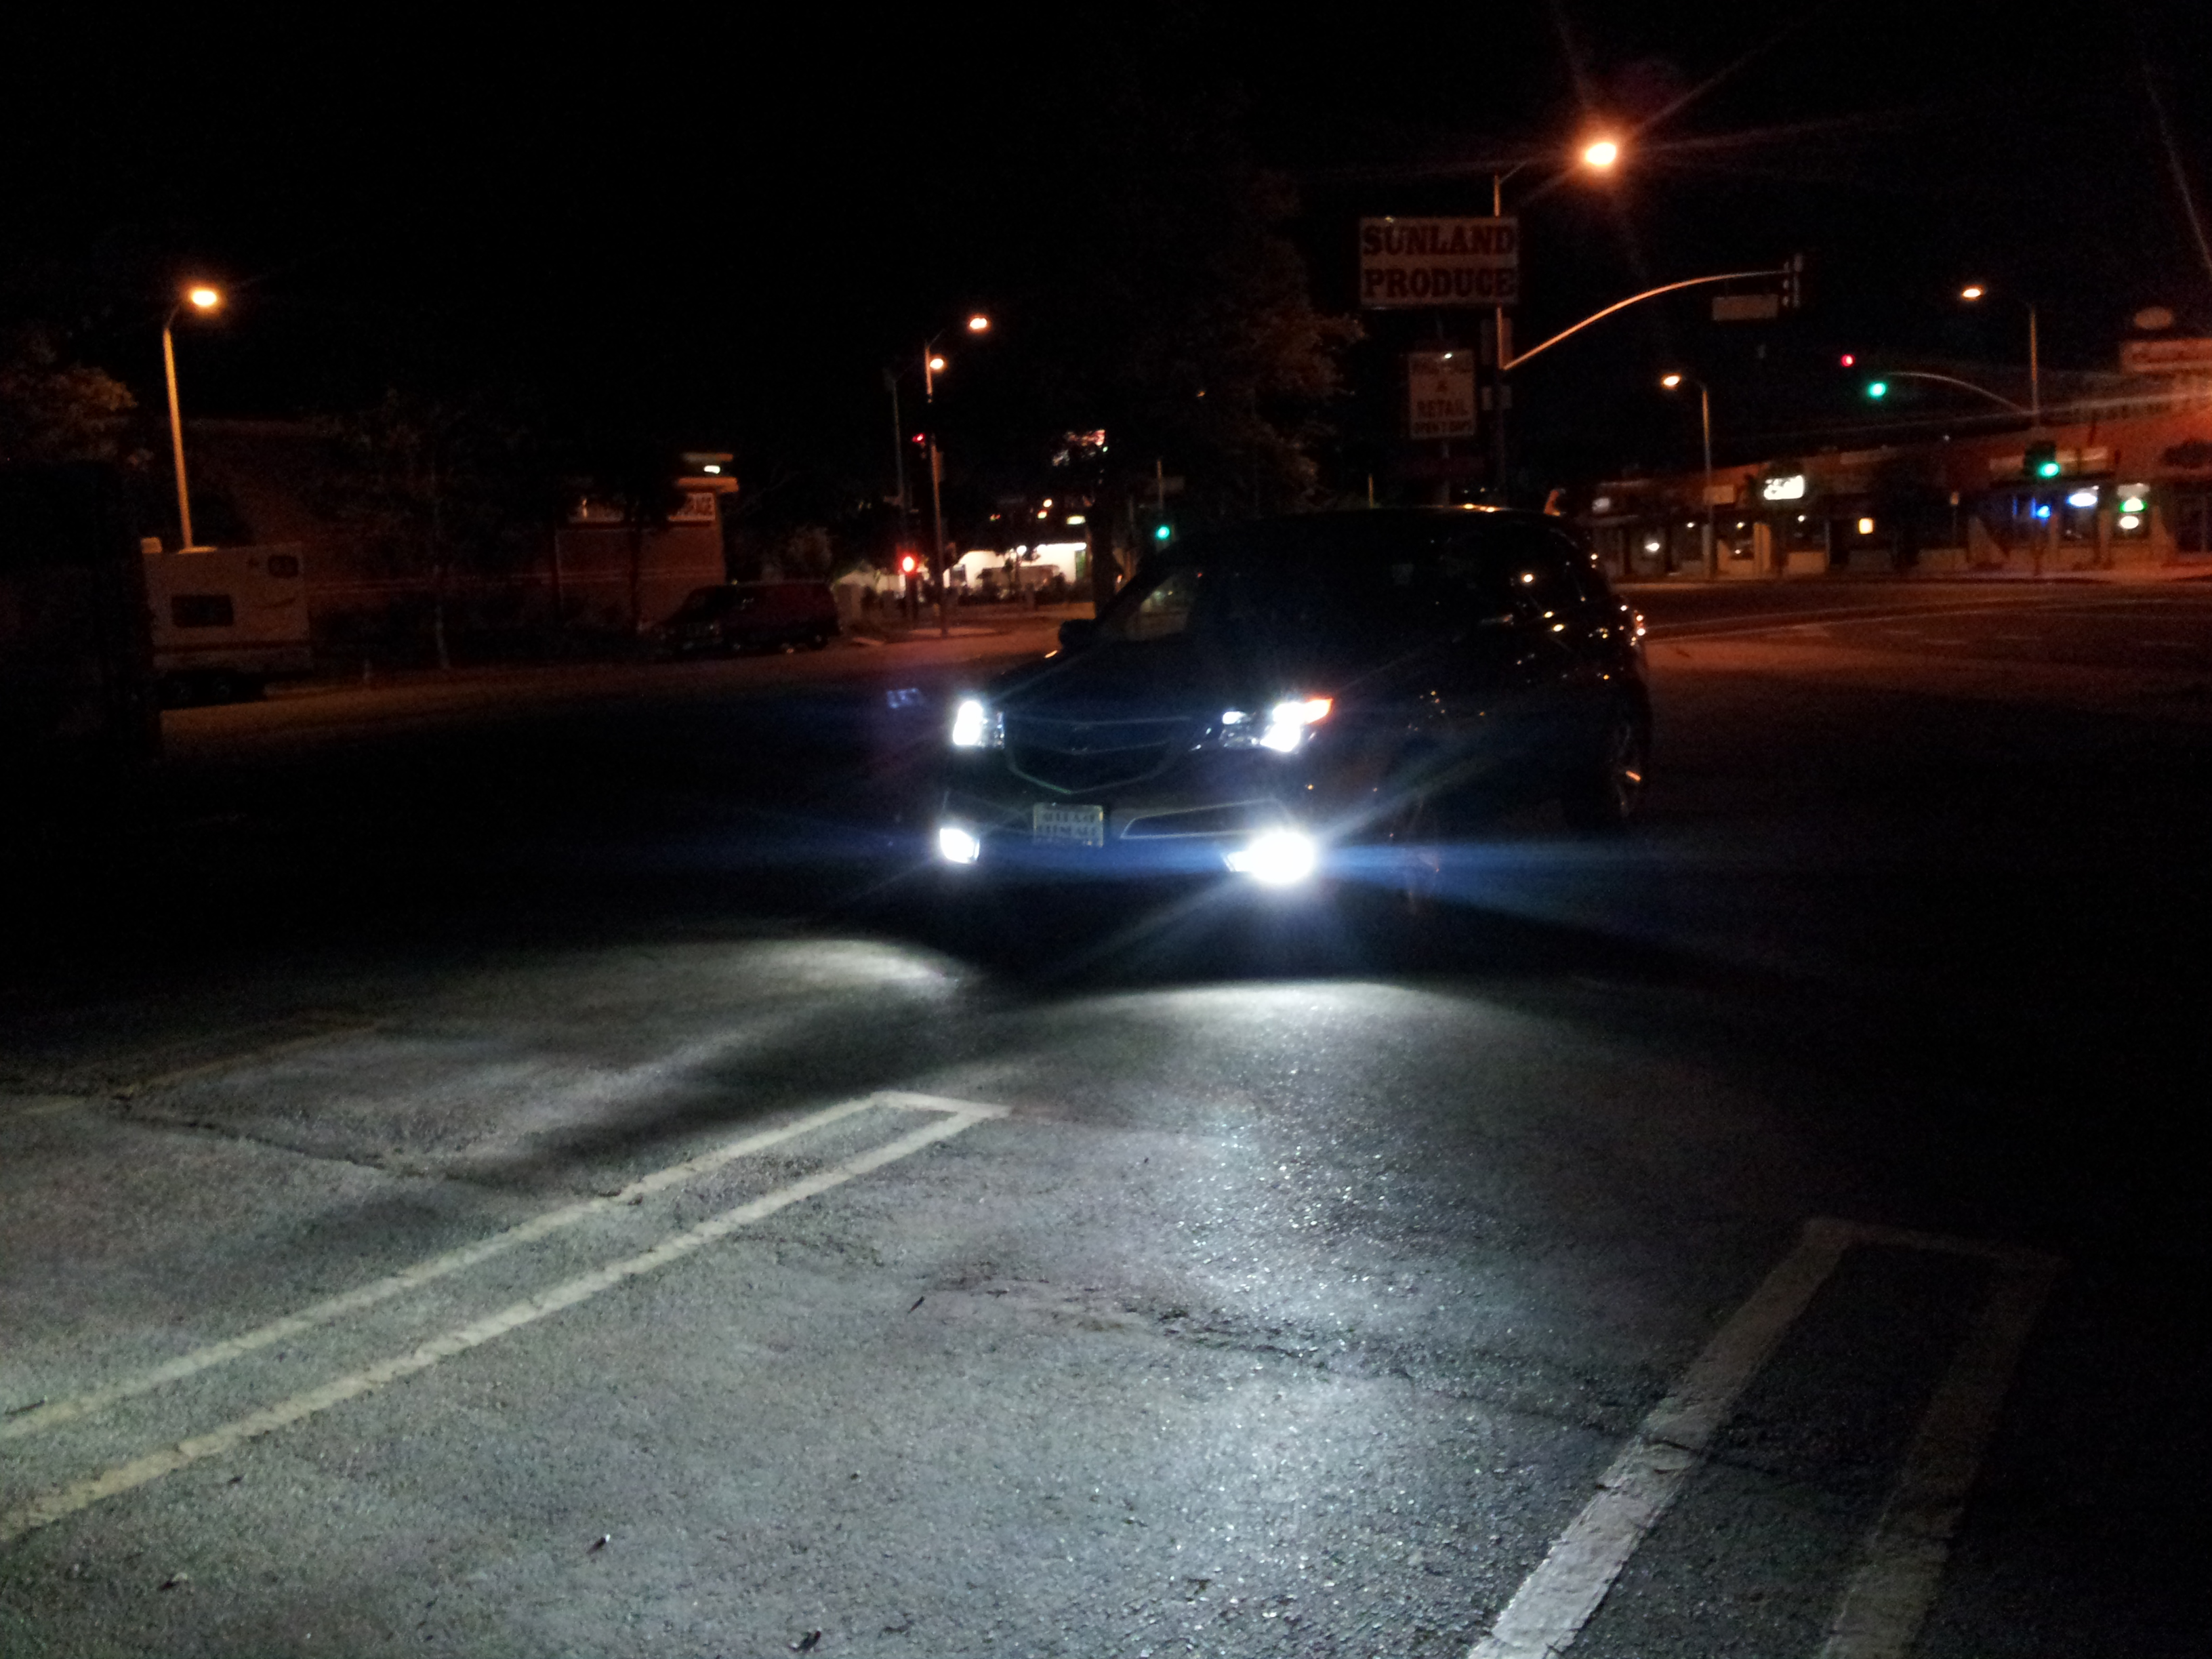 HID Fog/LED DRL Installed - PICS-20121025_214031.jpg